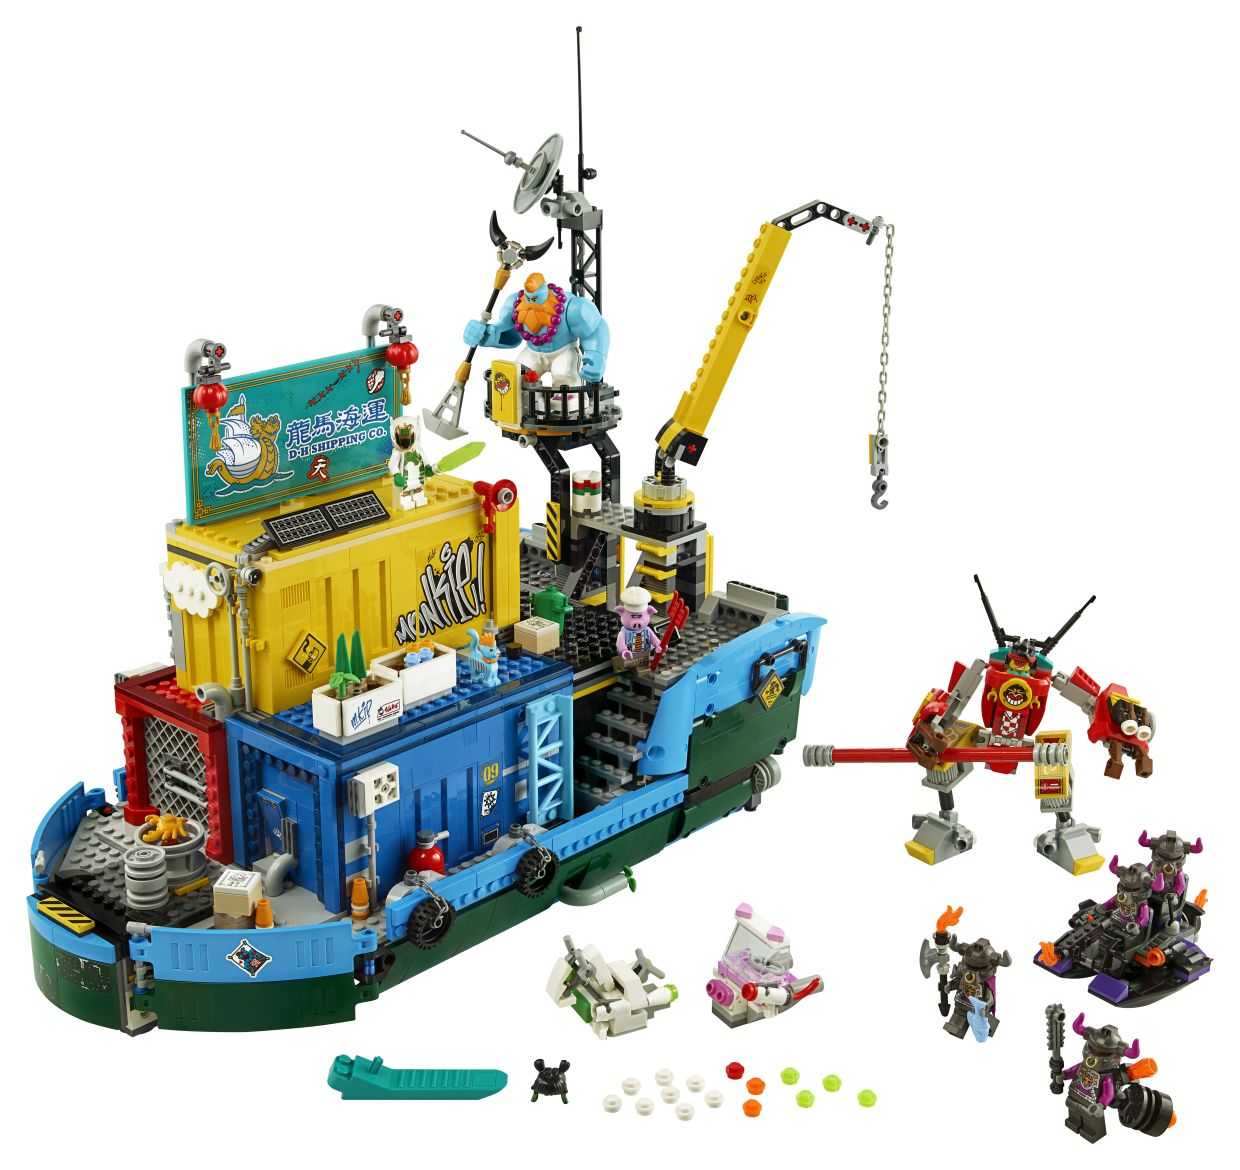 The range comes with new play experiences, new playsets and models, and even an animated TV series that tells the next story in the adventure.